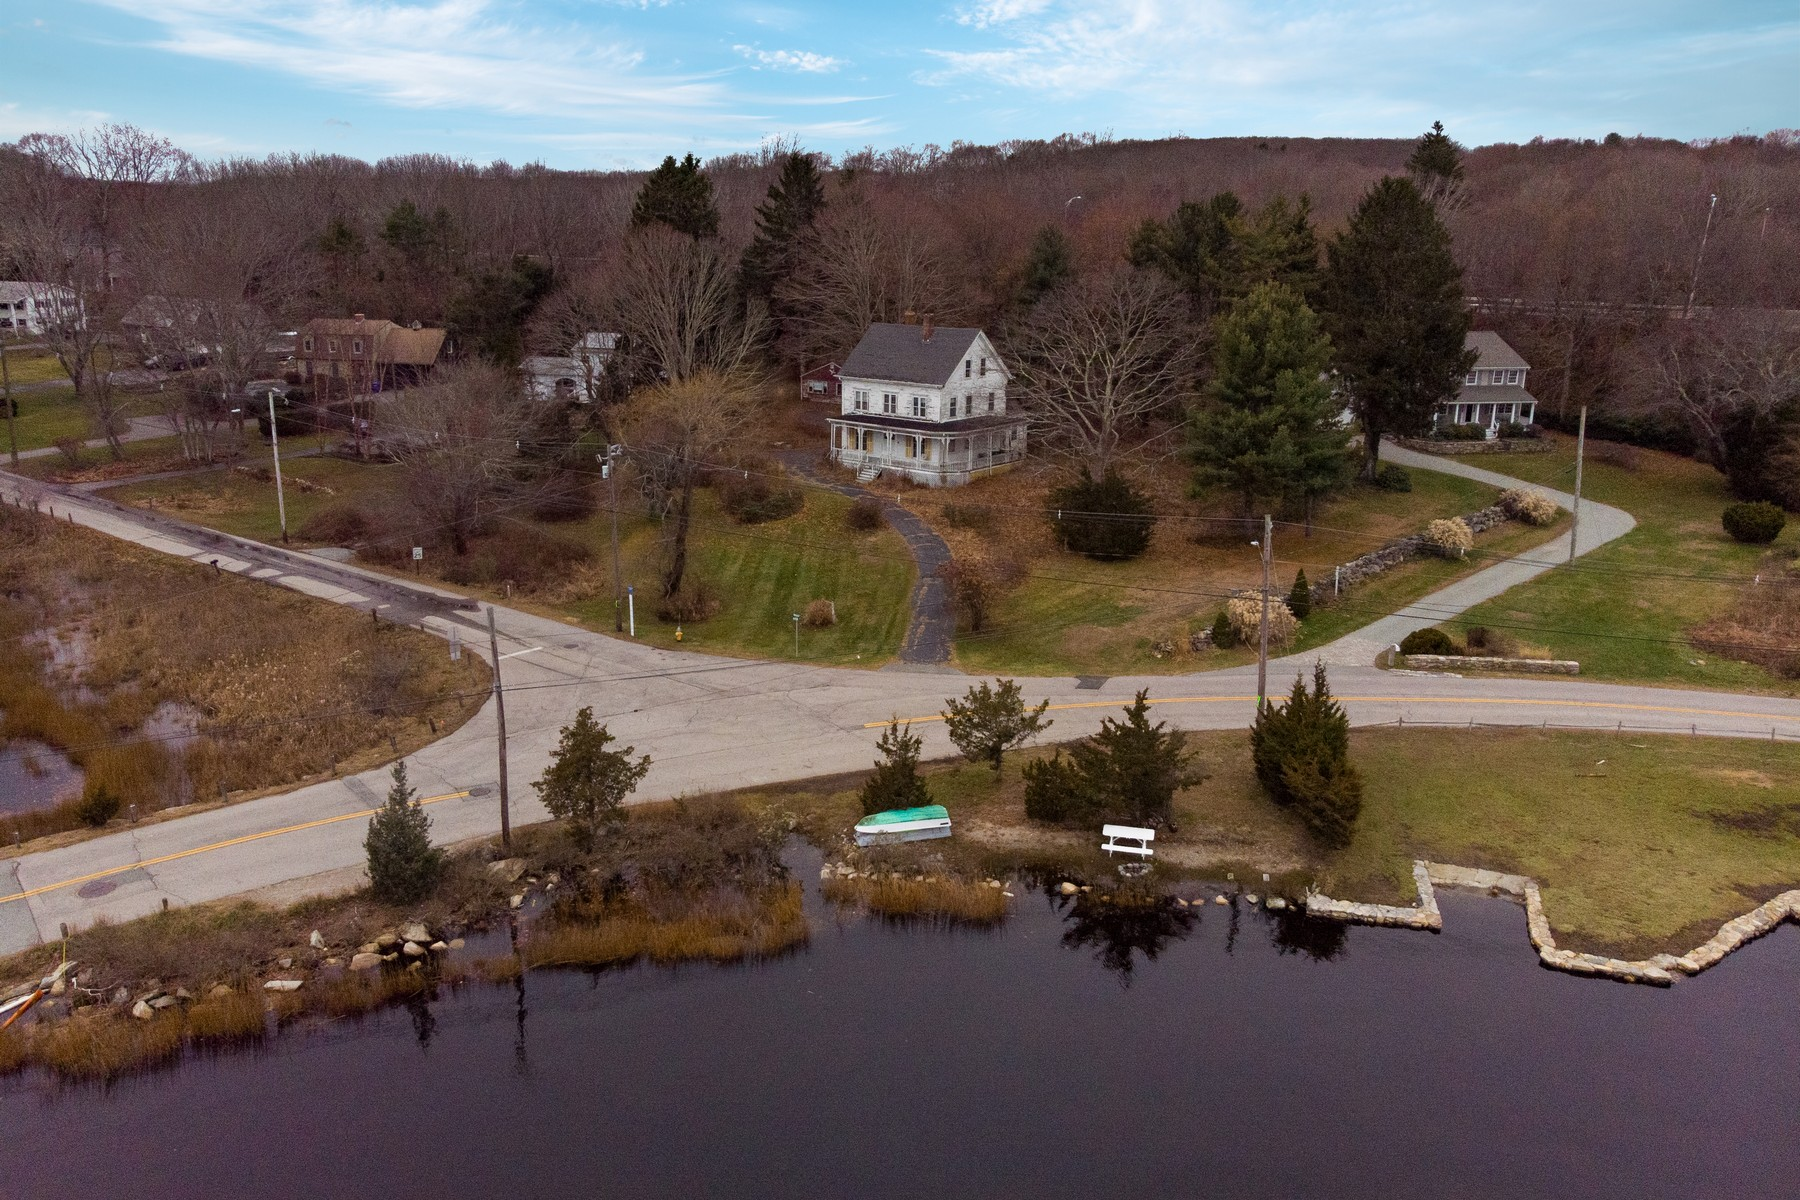 Single Family Homes for Sale at Breathtaking, Unobstructed Views 4 Bindloss Road Groton, Connecticut 06355 United States